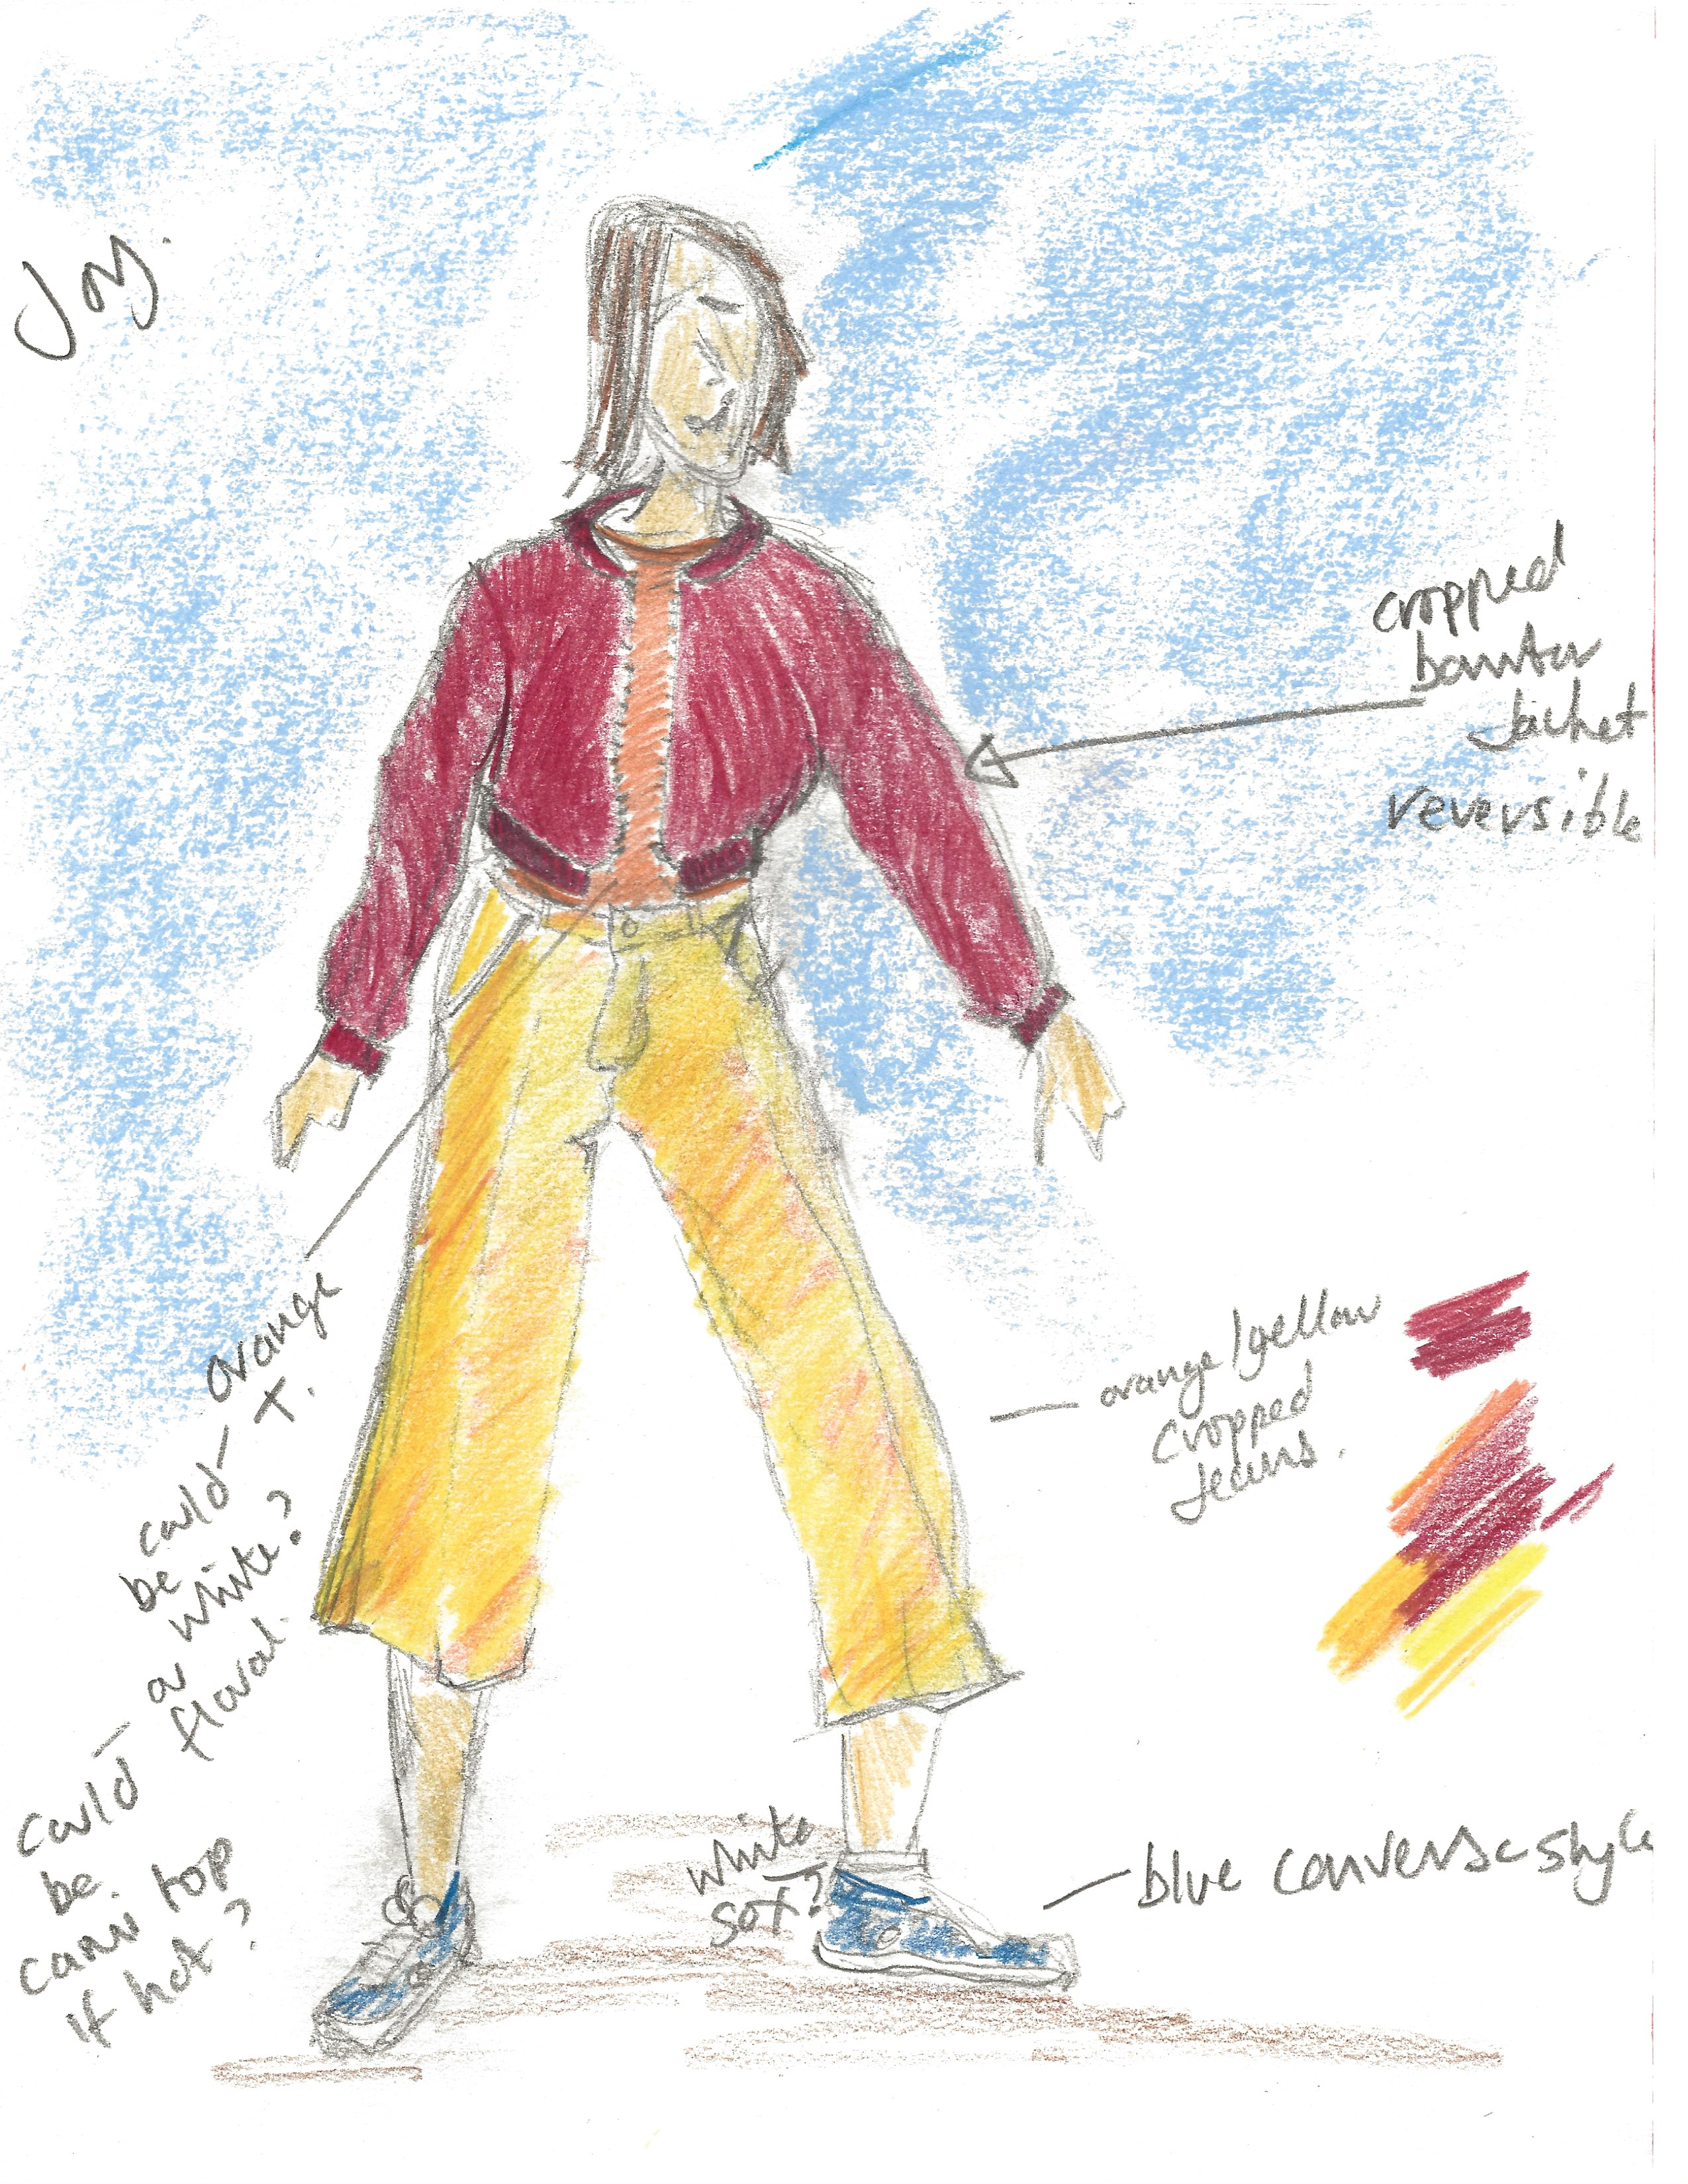 Splash by Extraordinary Bodies - Costume design illustrations by Laura Guthrie - A girl wearing red zipped jacket and 3/4 length yellow trousers and blue converse shoes.